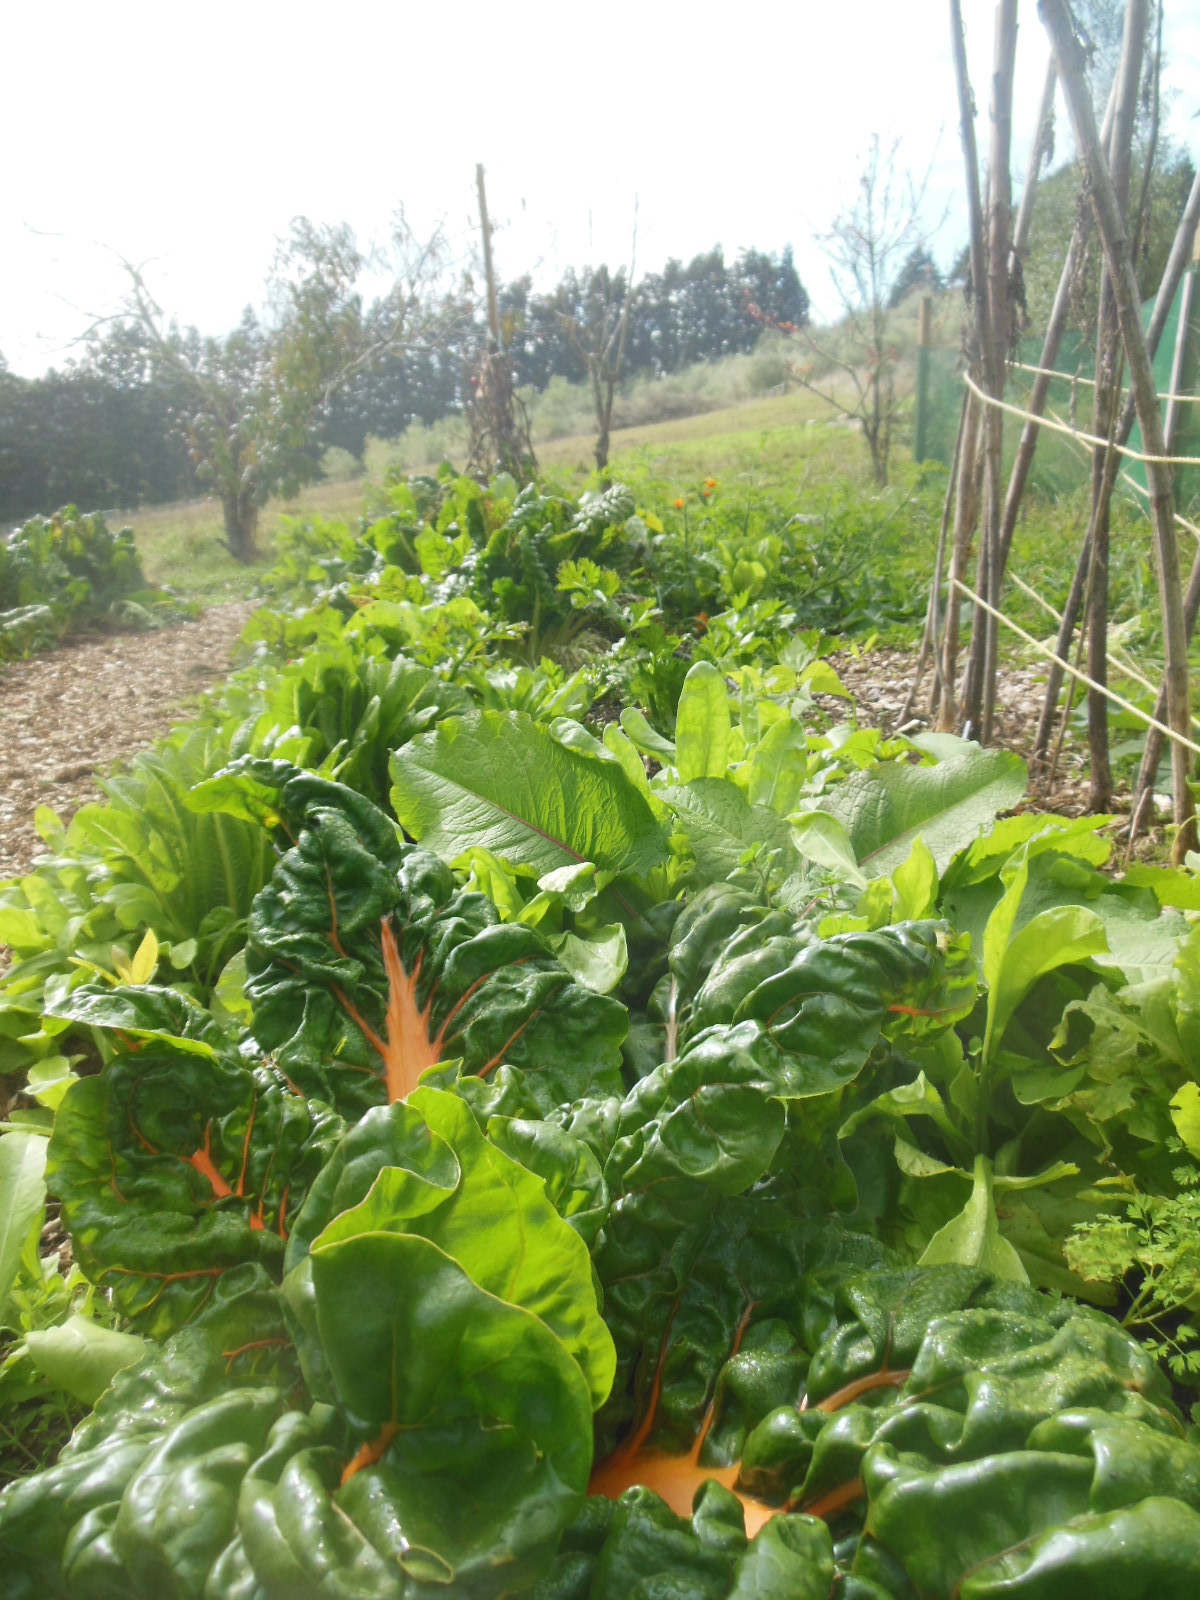 Growing vegetables in abundance depends on several factors.